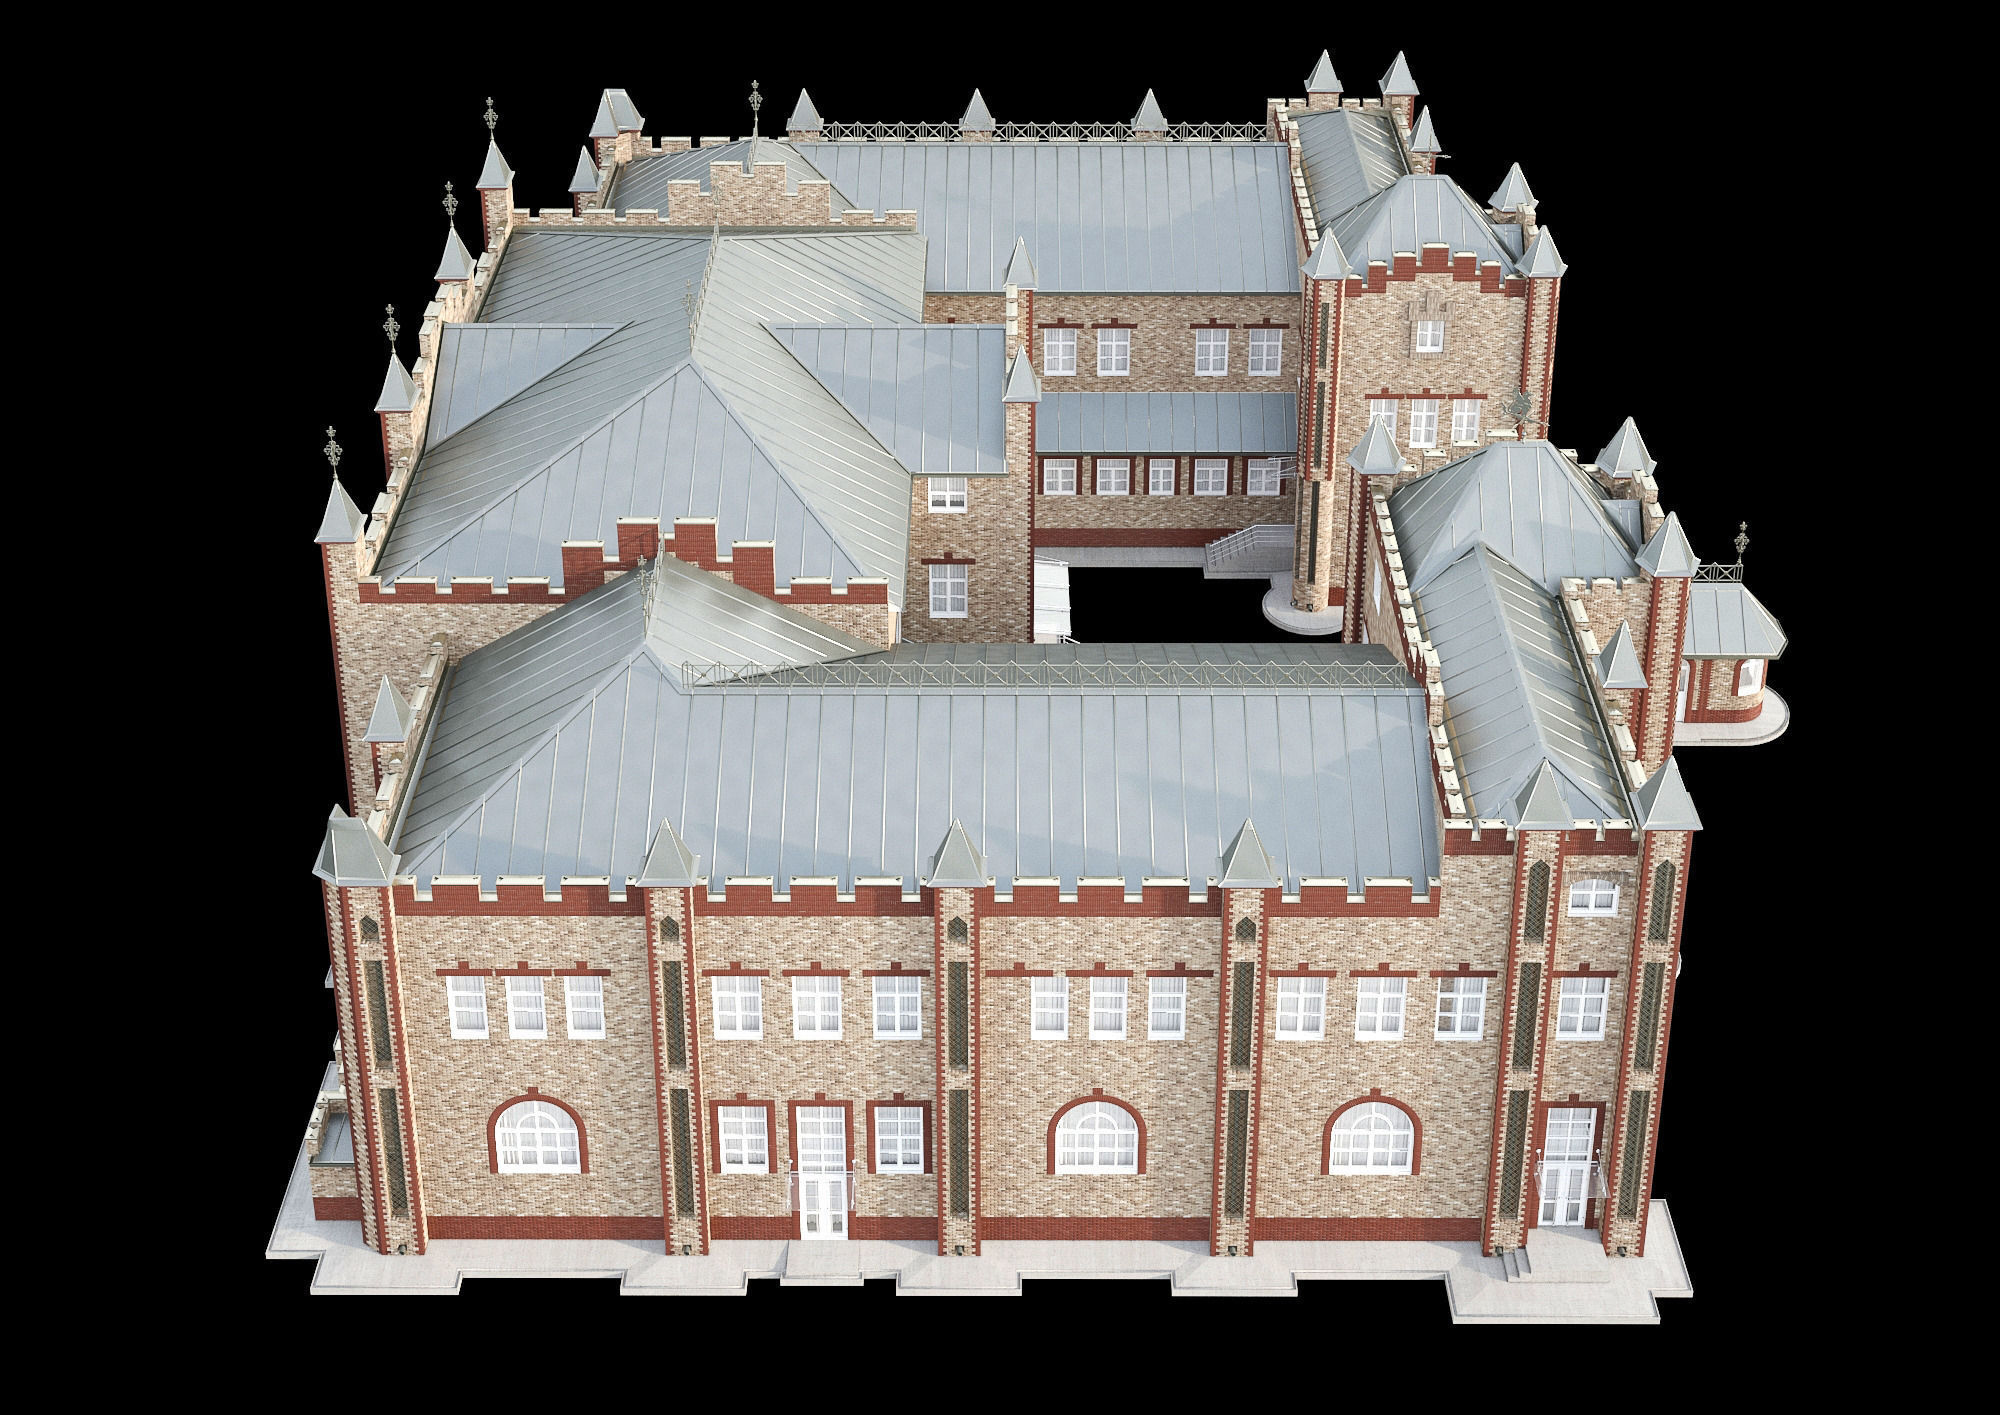 Queen anne style building 3d model max fbx for Stile queen anne